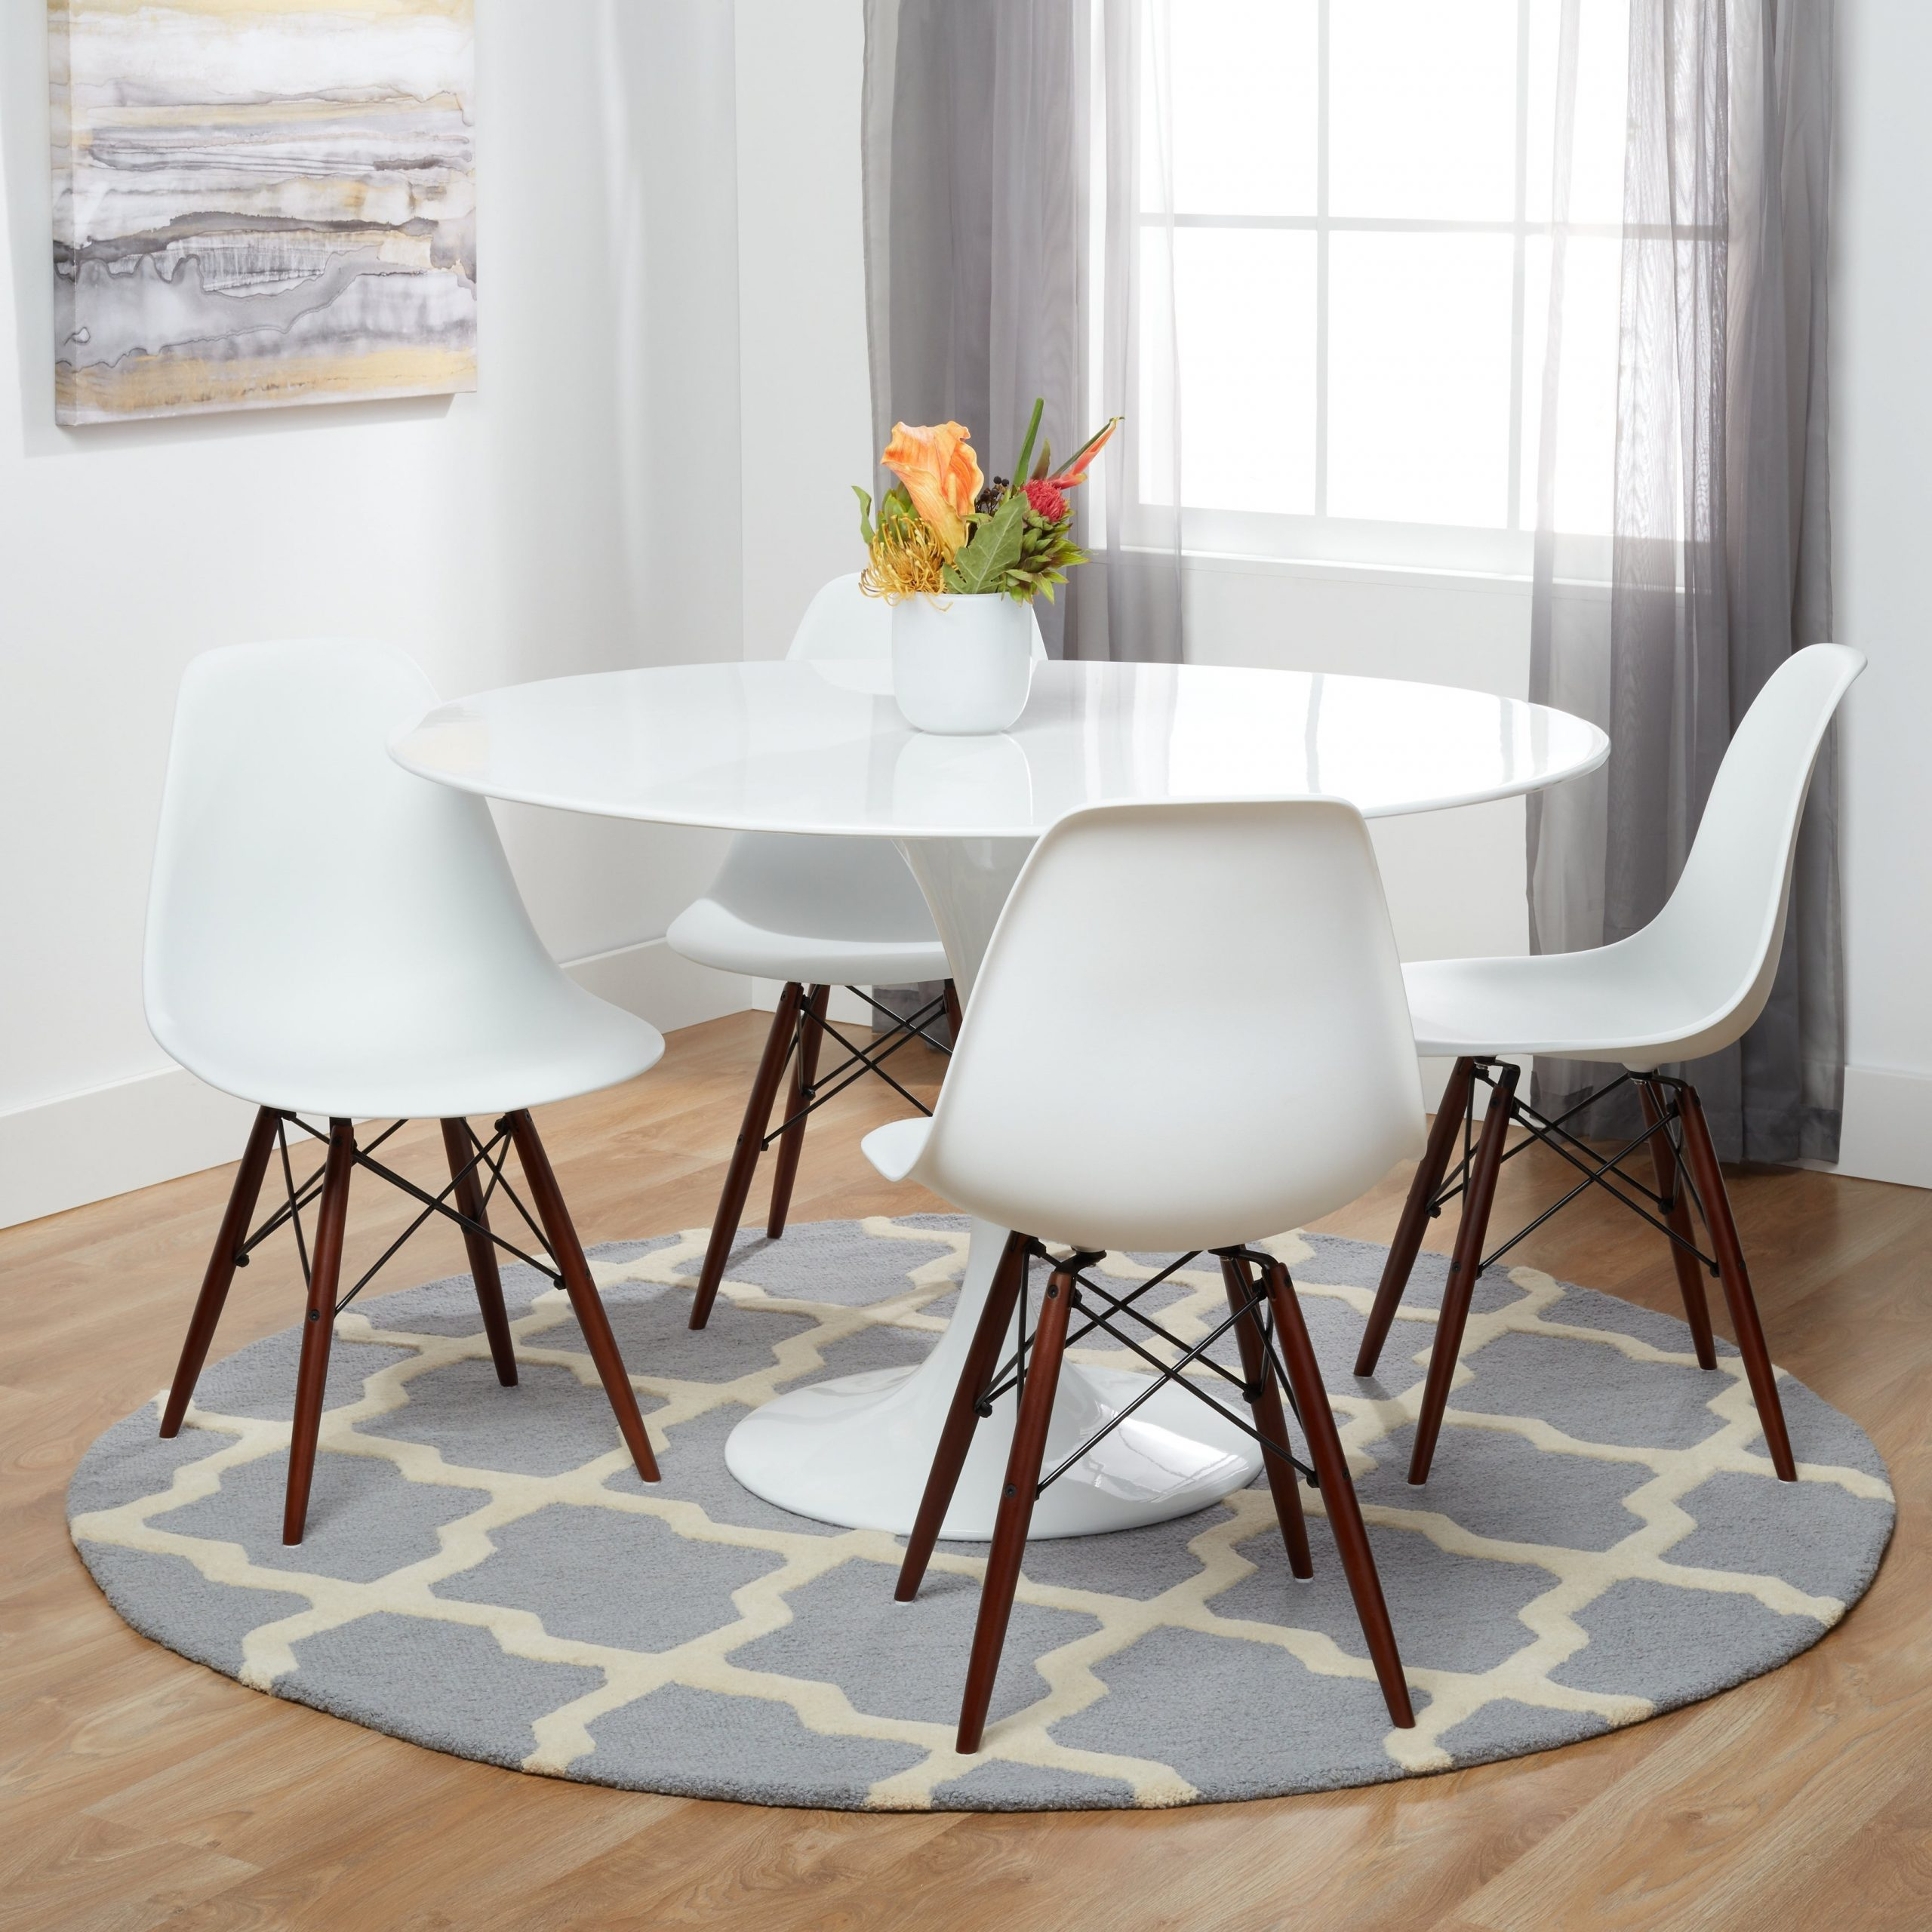 Eames Style Dining Tables With Wooden Legs With Most Current Take Me Home Furniture Eames Style Side Chair With Walnut (View 15 of 16)